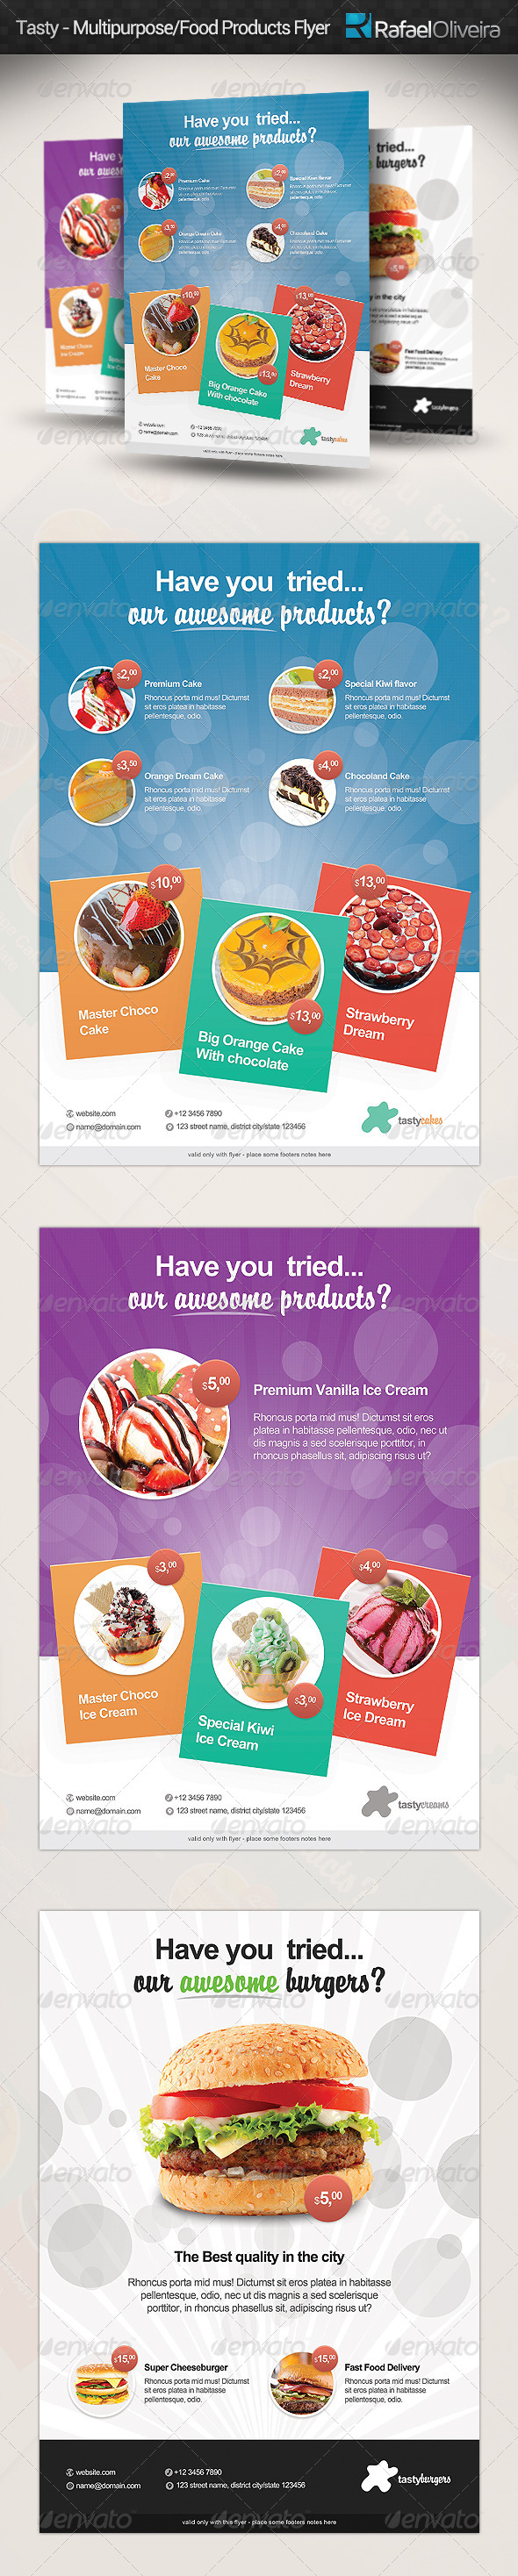 GraphicRiver Tasty Multipurpose Food Products Flyer 5206248